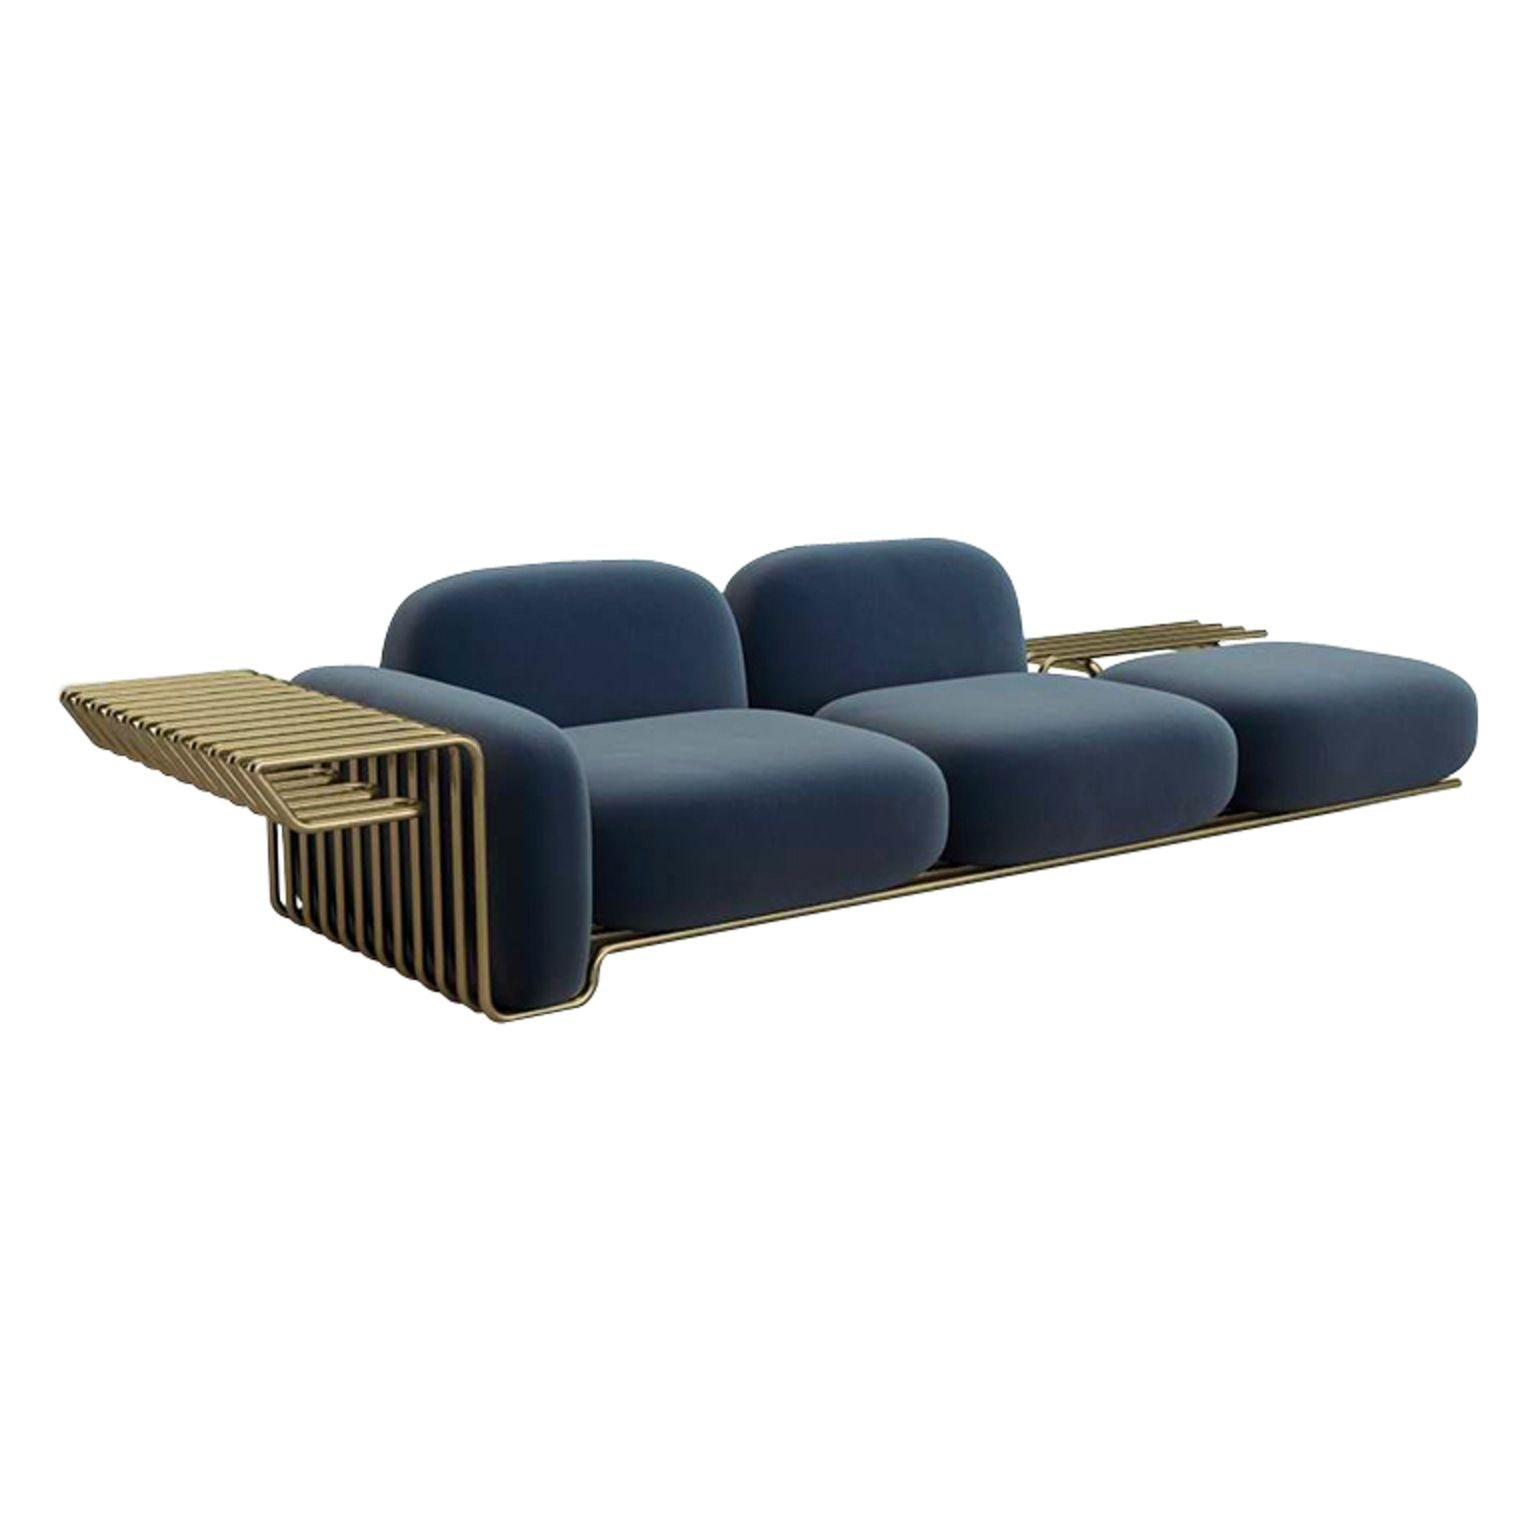 Pipeline La Sofa By Atleier Damis Contemporary Industrial